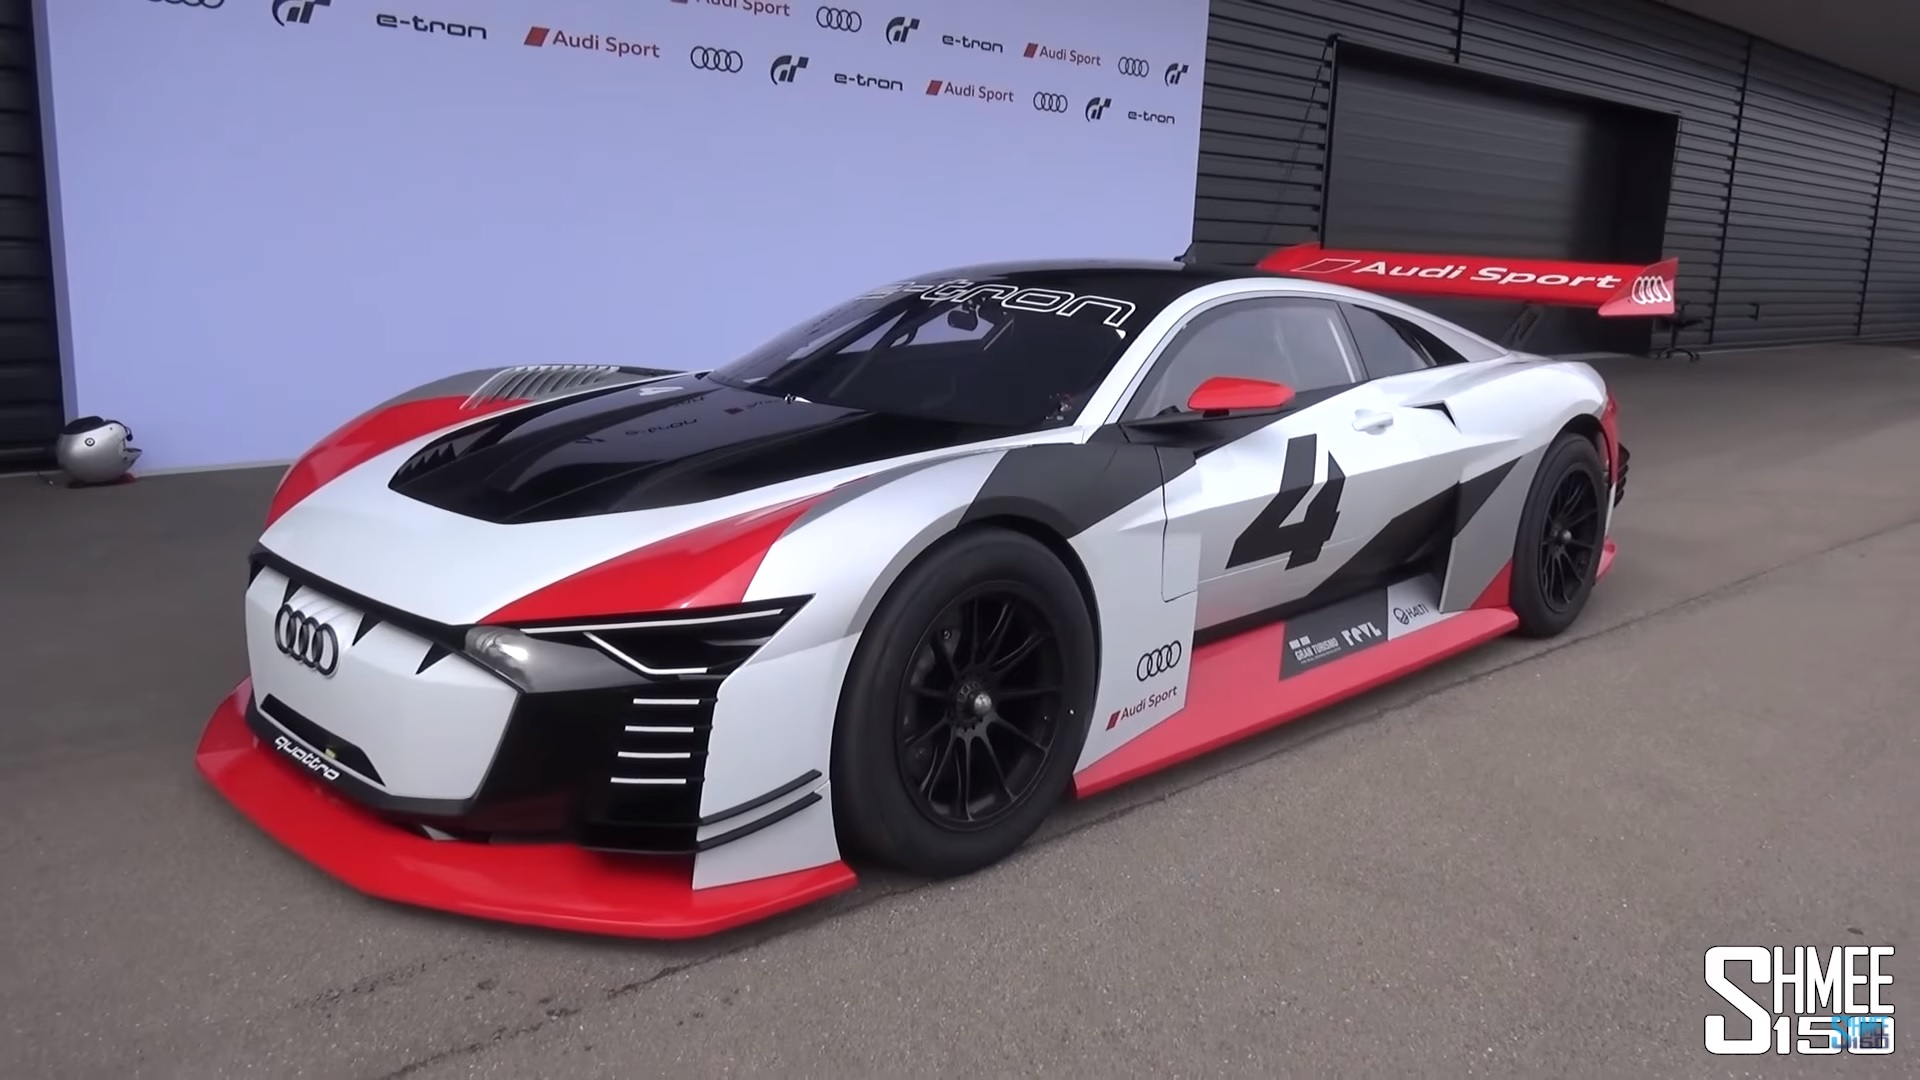 Video Of The Day: Shmee Drives The Audi E-Tron Vision Gran